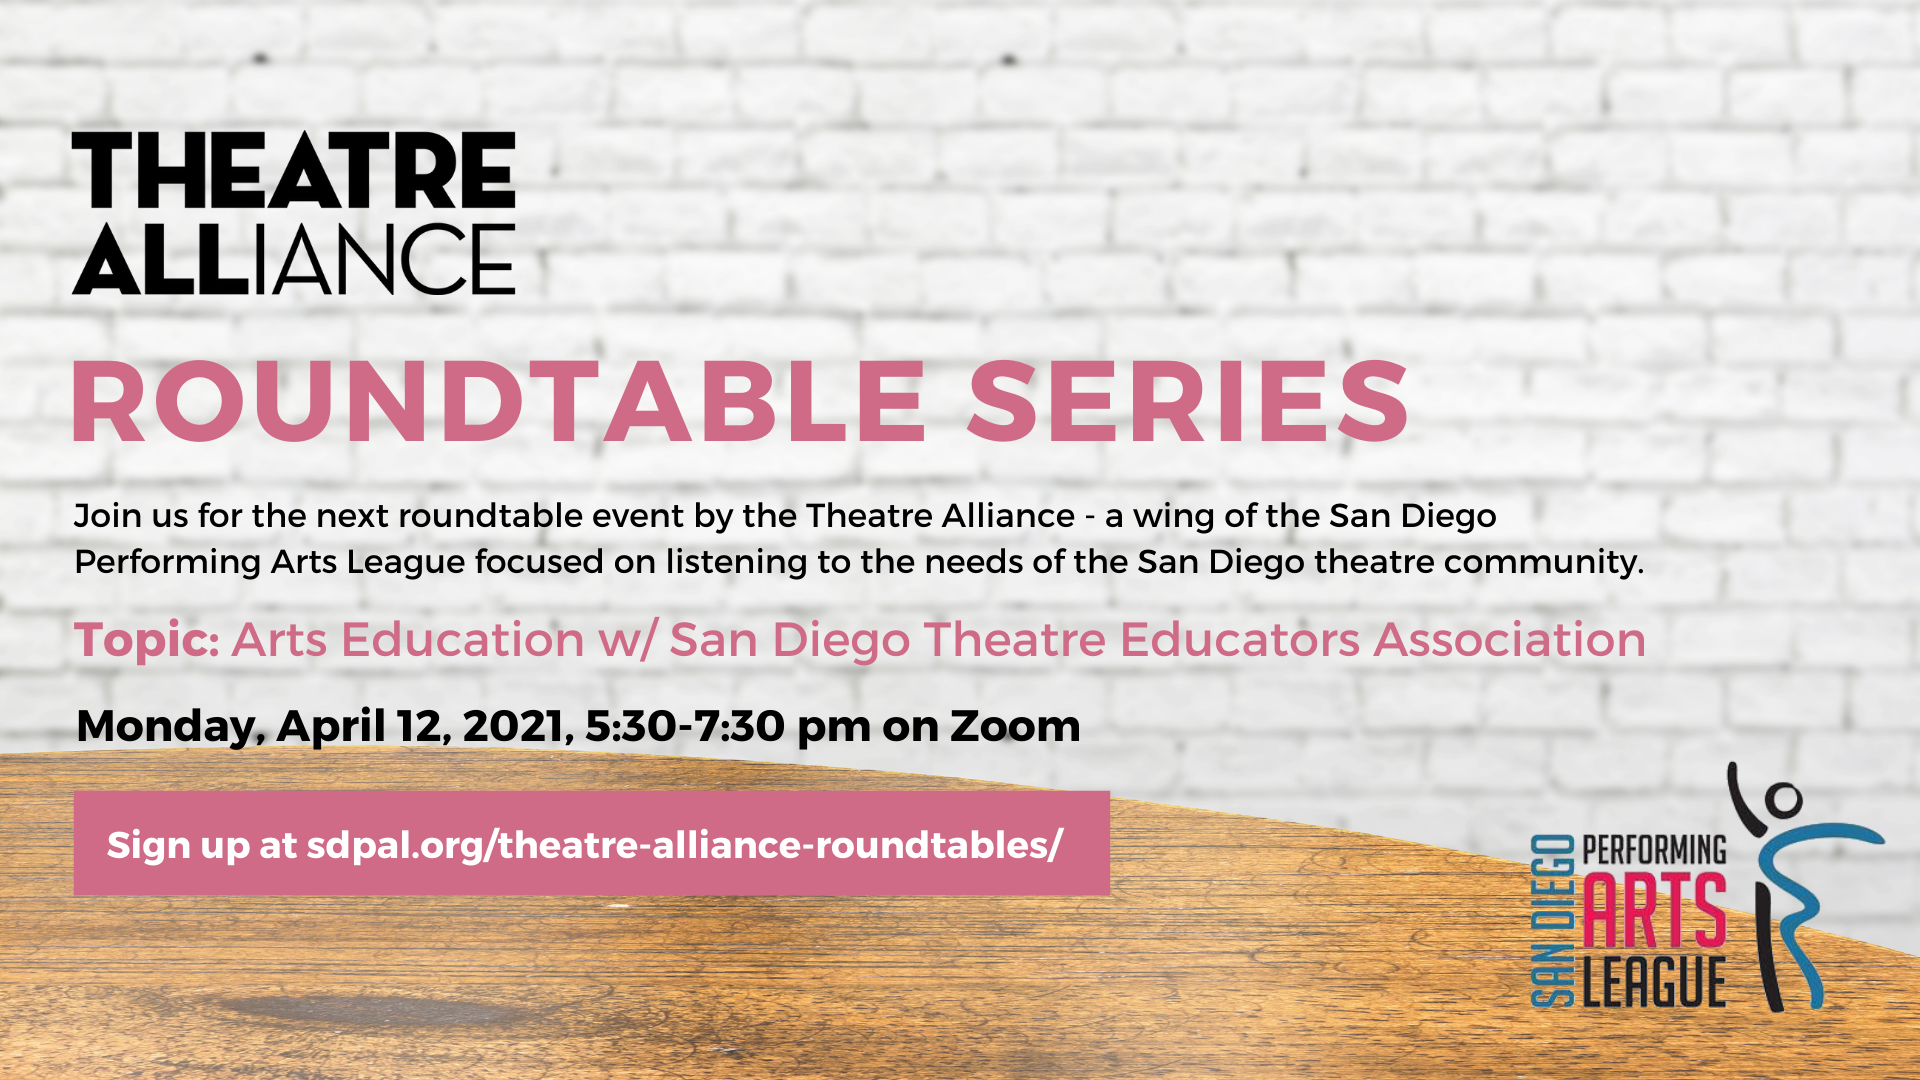 Arts Education Roundtable - April 12, 2021 5:30-730pm - SIGNUP COMING SOON